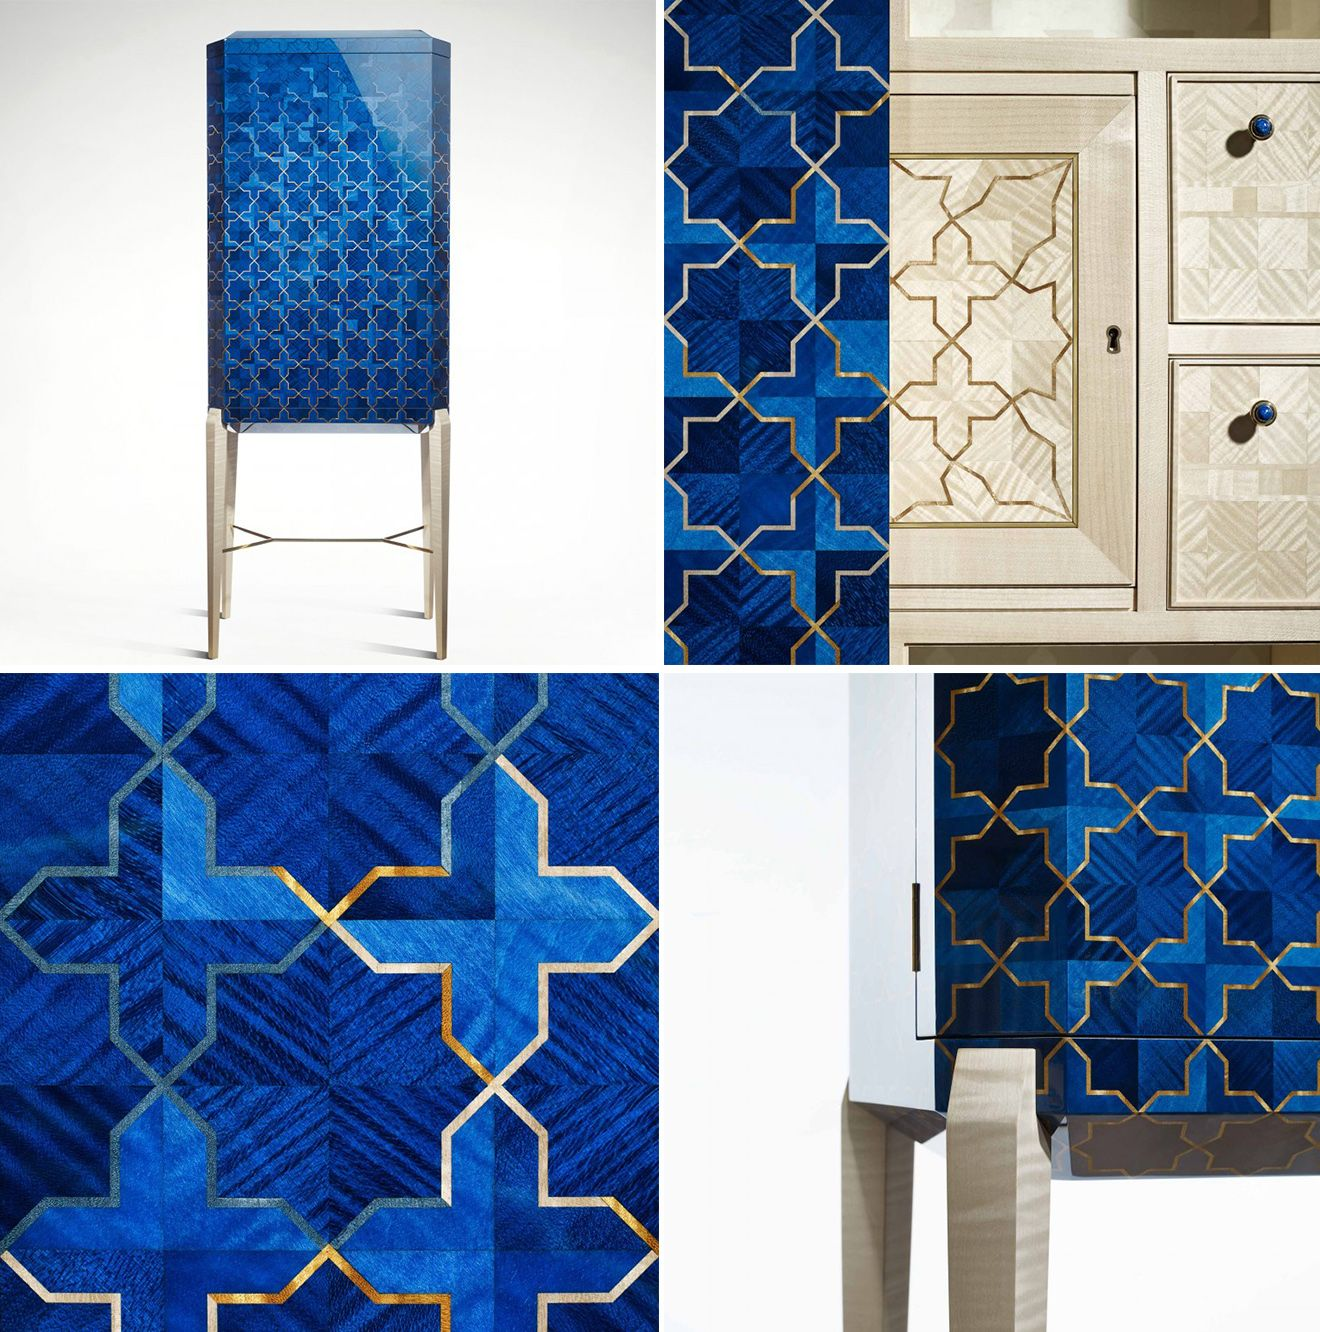 Blue islamic inspired luxury furniture design from LINLEY Girth treasure  chest furniture. LINLEY Launches the Girih Collection Event   Chest furniture